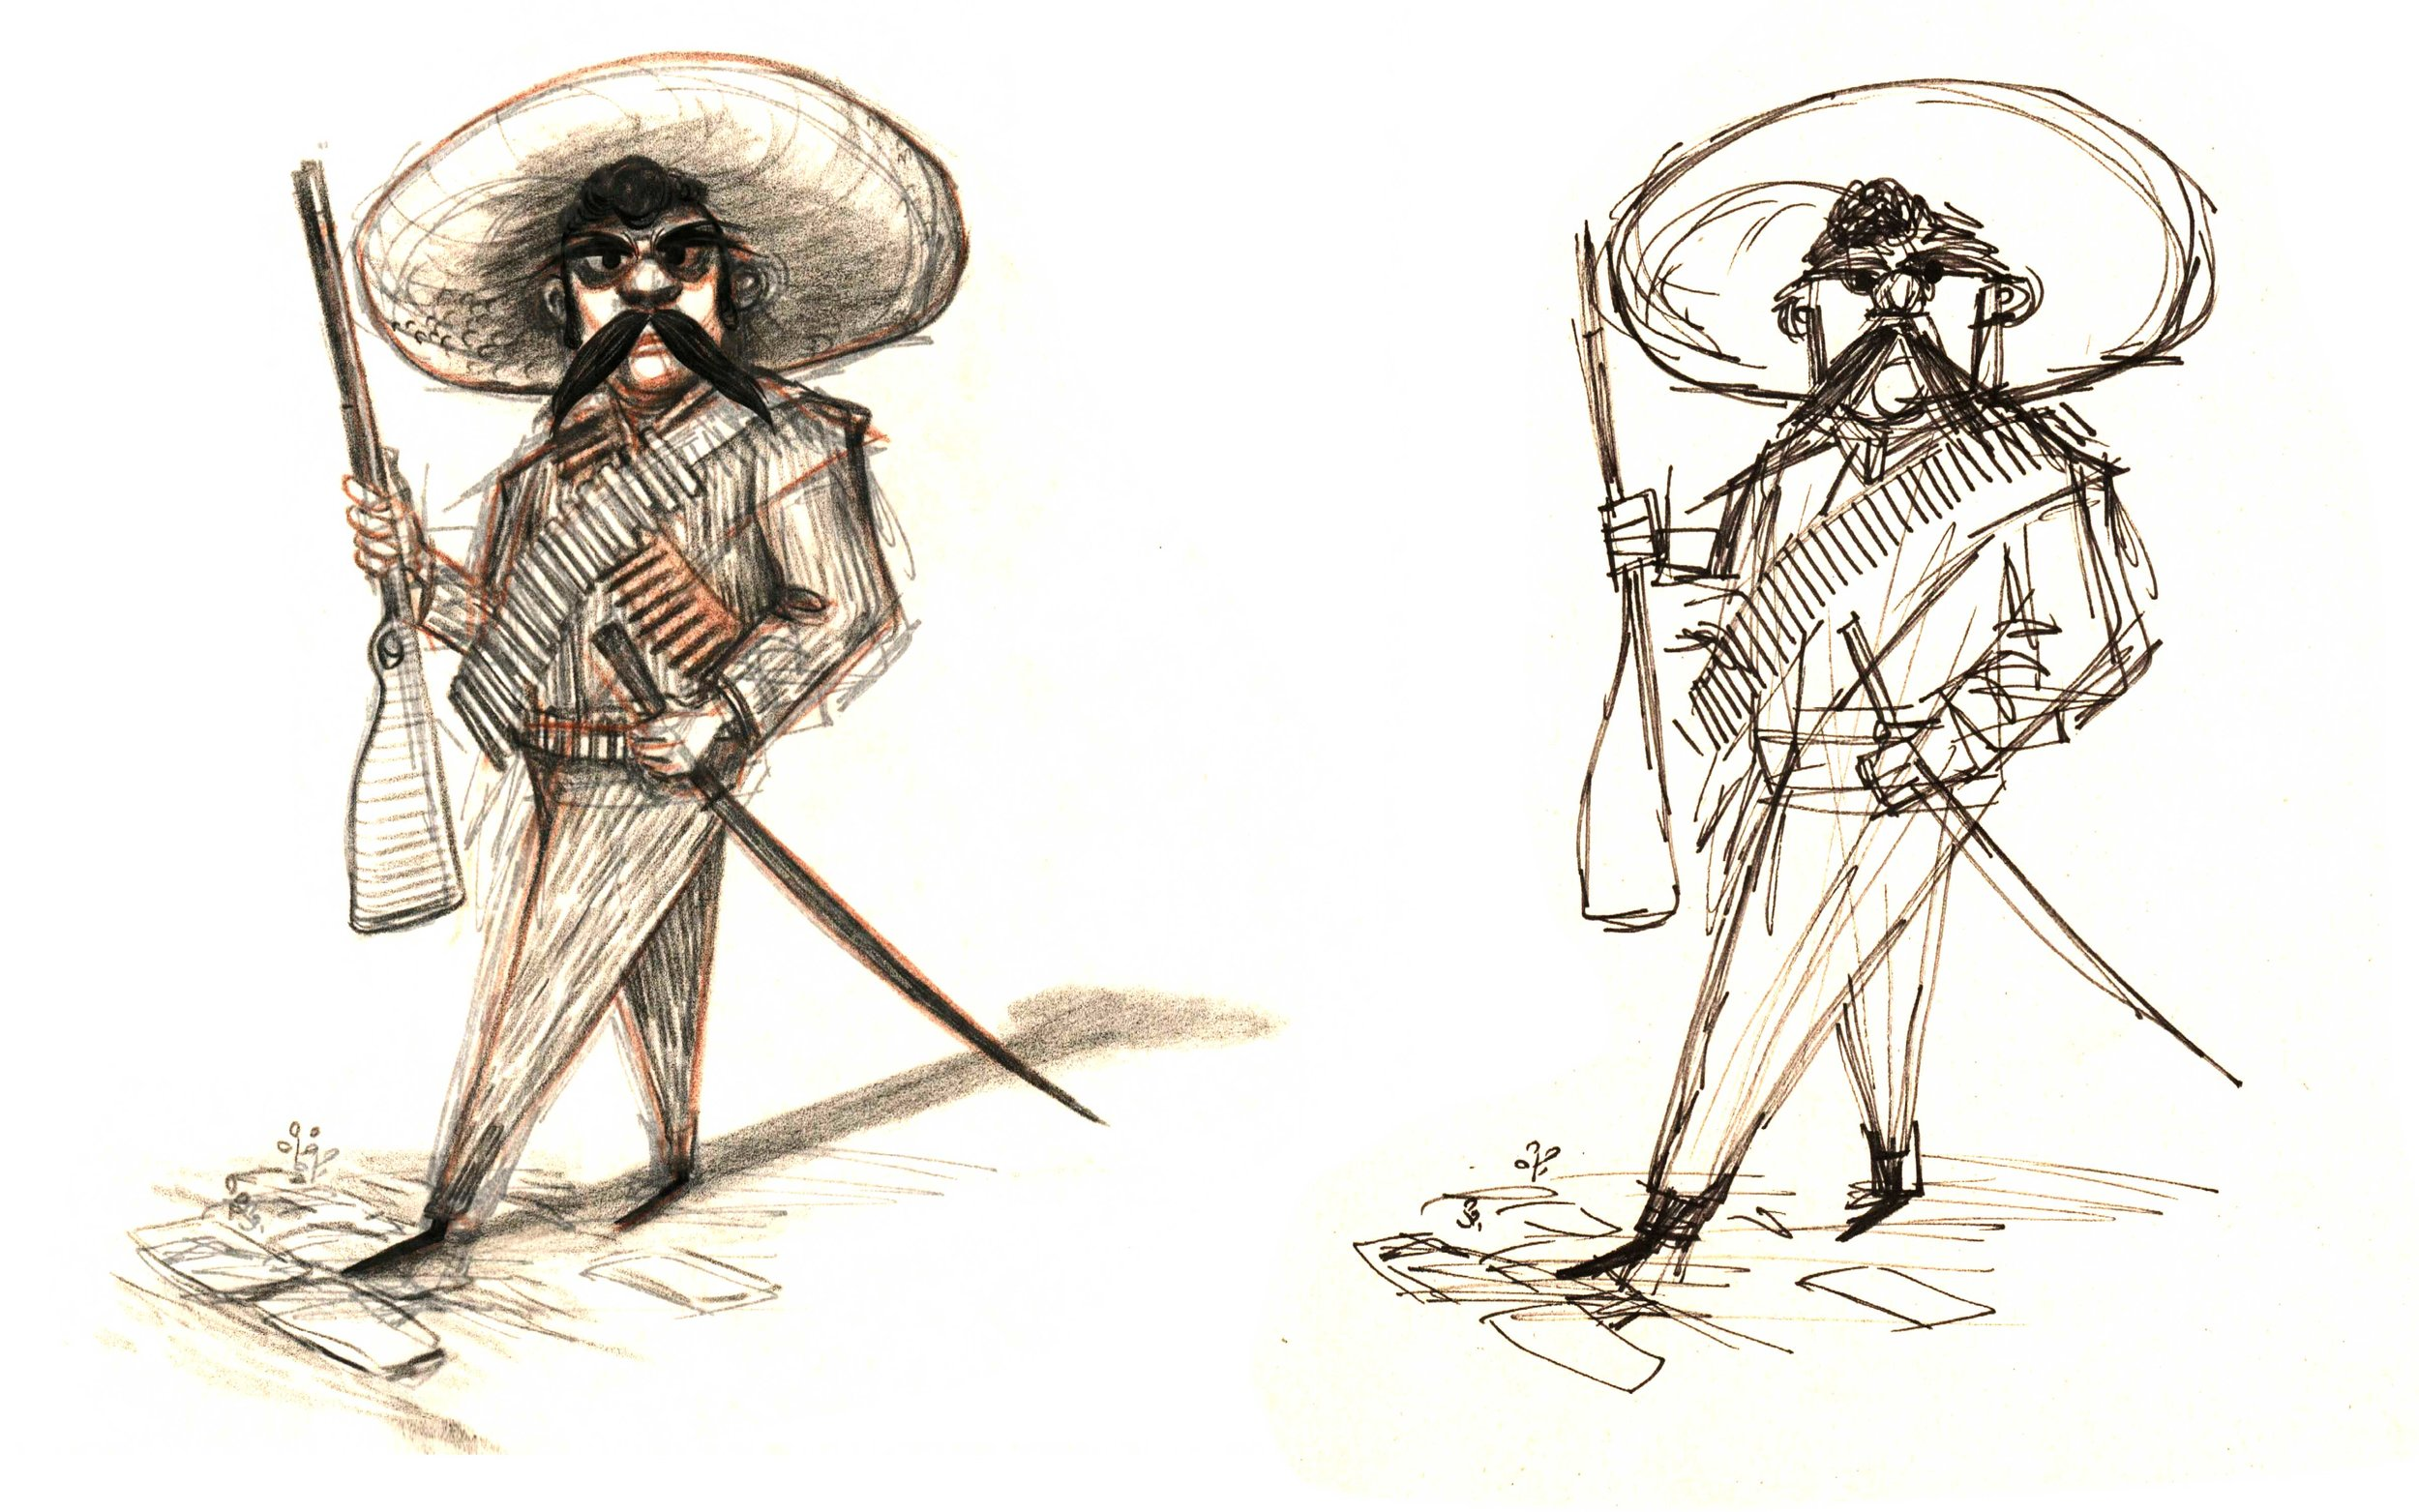 Zapata-flipped-and-larger.jpg